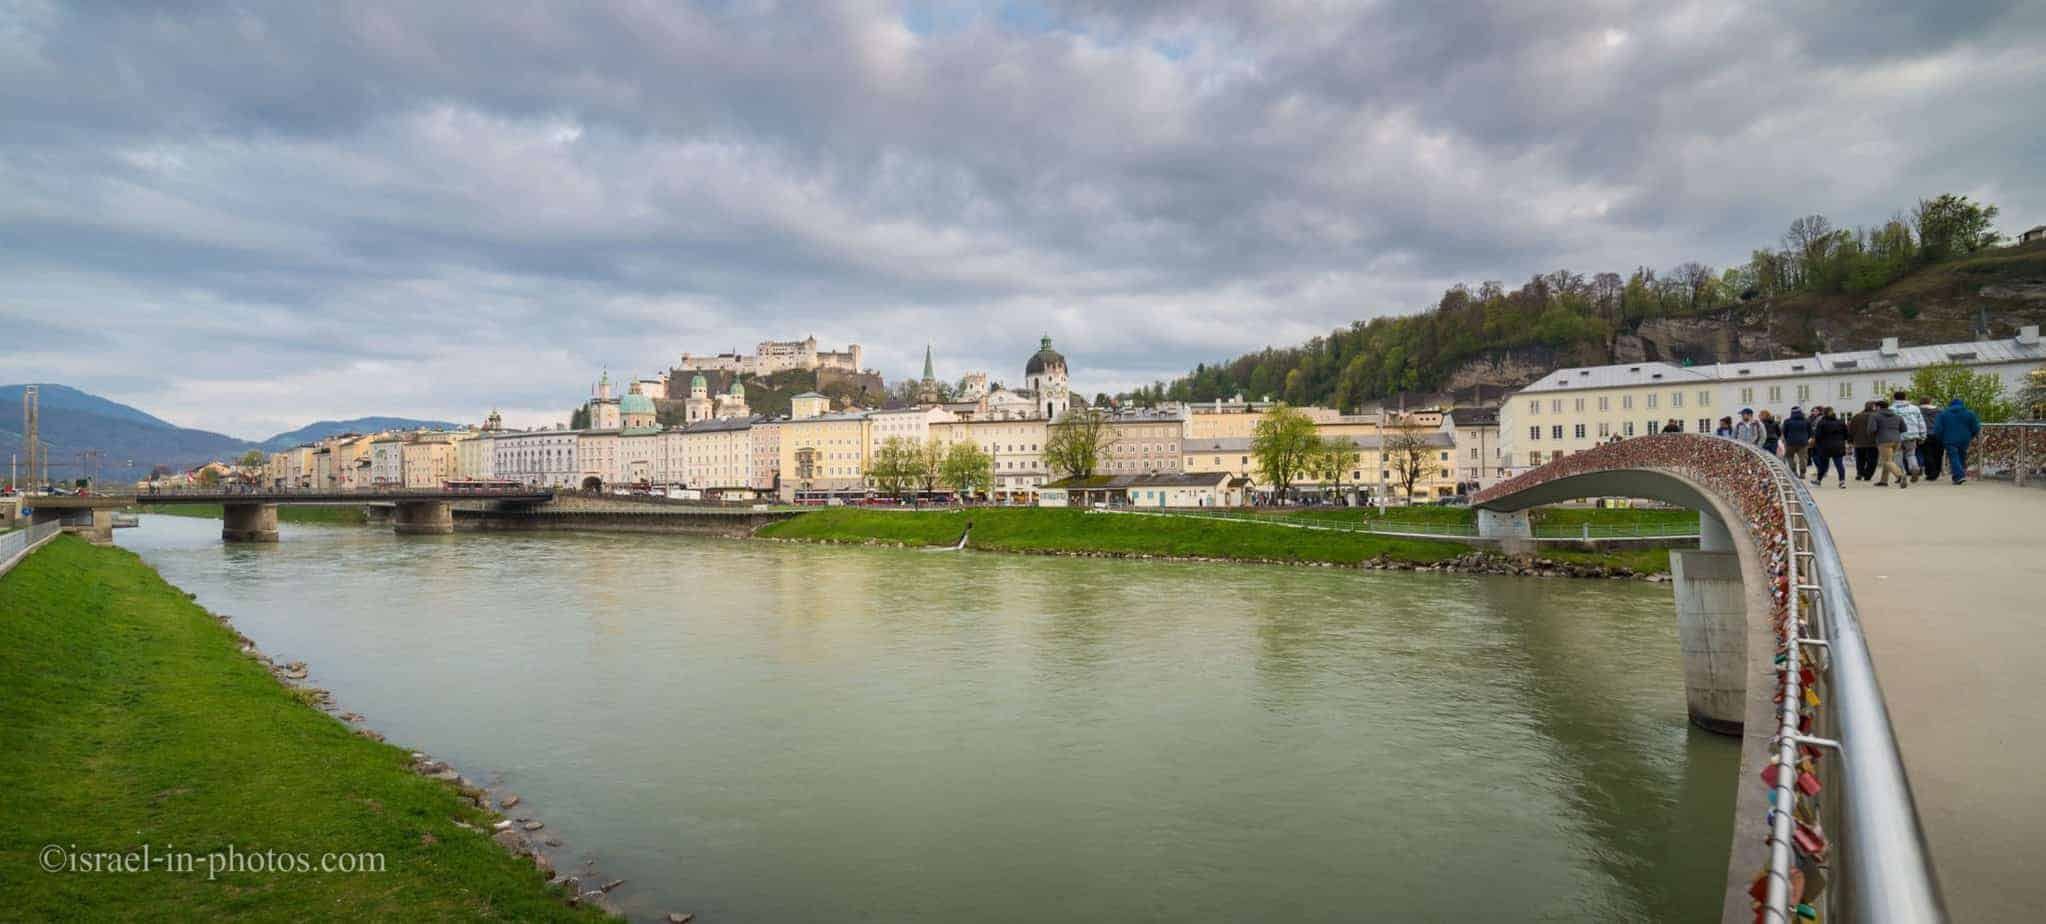 View of Fortress Hohensalzburg and Salzach river in Salzburg, Austria